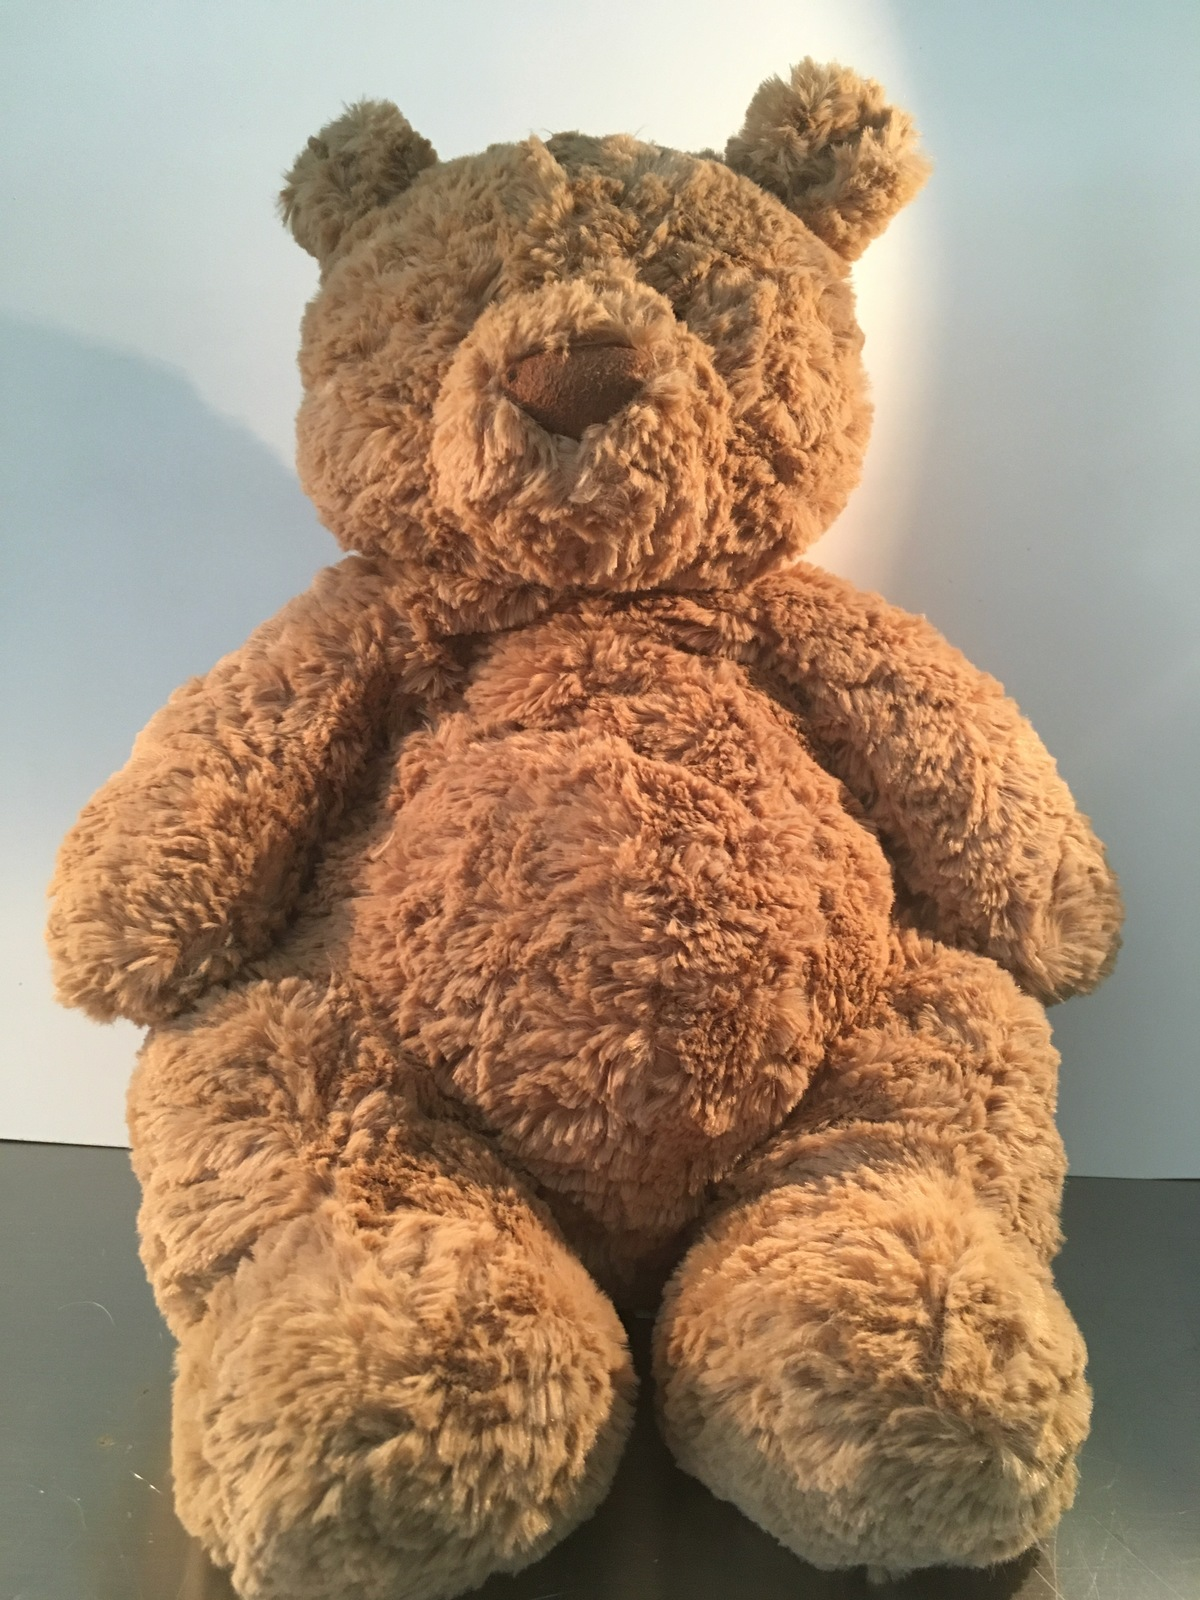 JELLYCAT LONDON shaggy and floppy brown teddy bear - $16.00